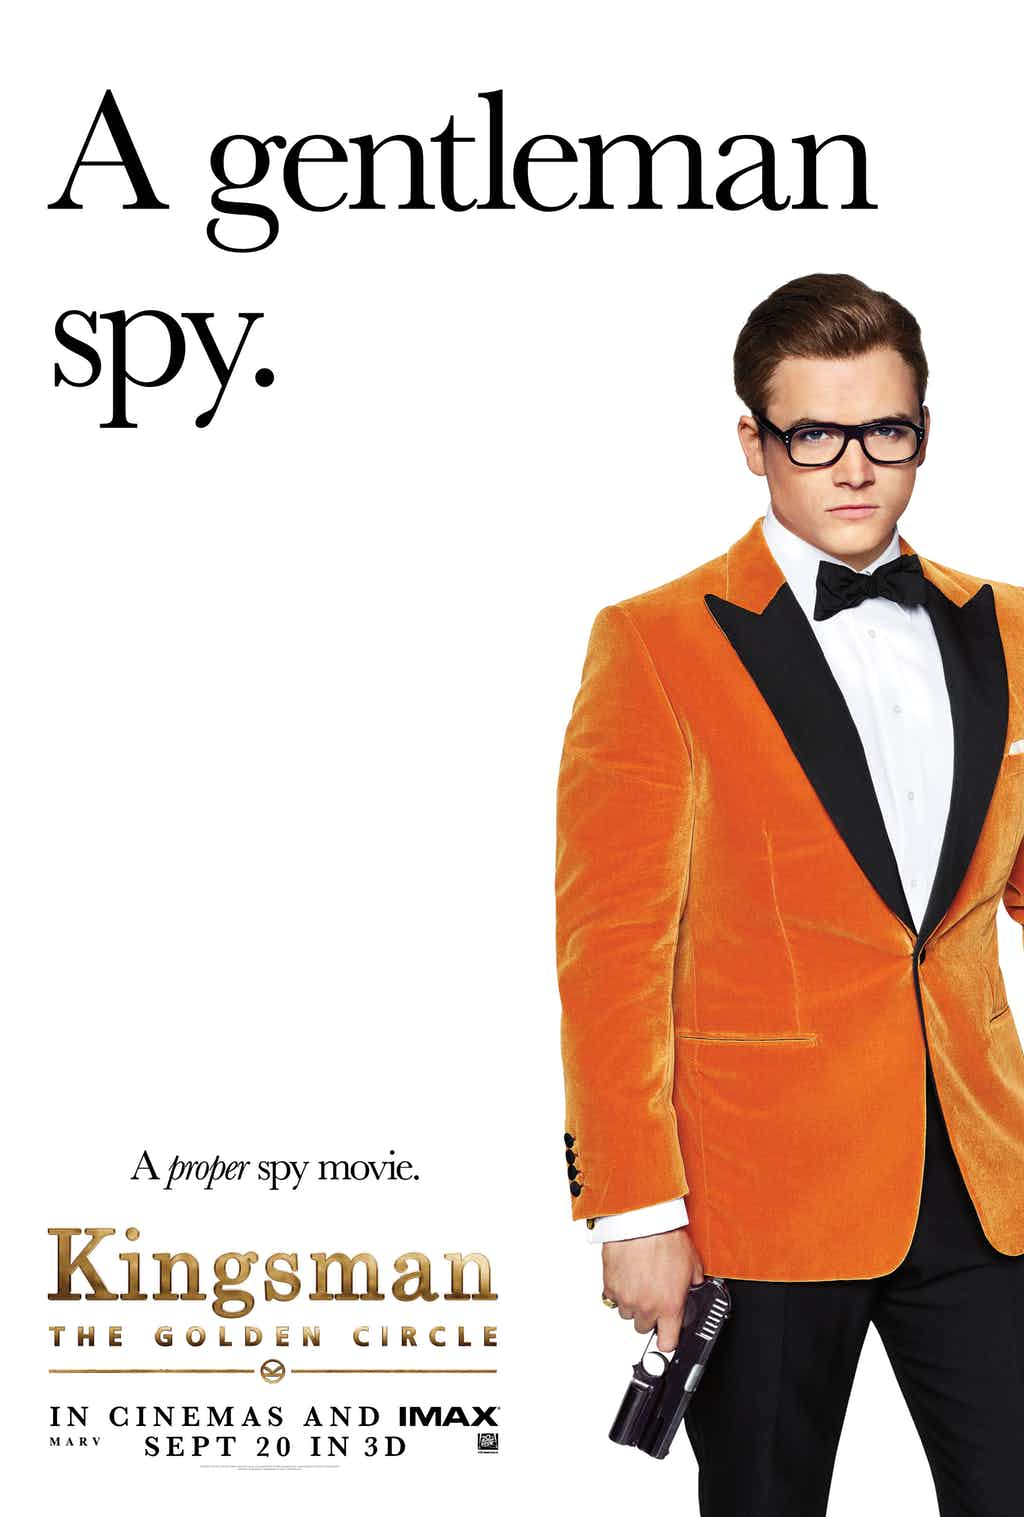 Wild TV Spot For Kingsman: The Golden Circle Cordially Invites You To Dinner